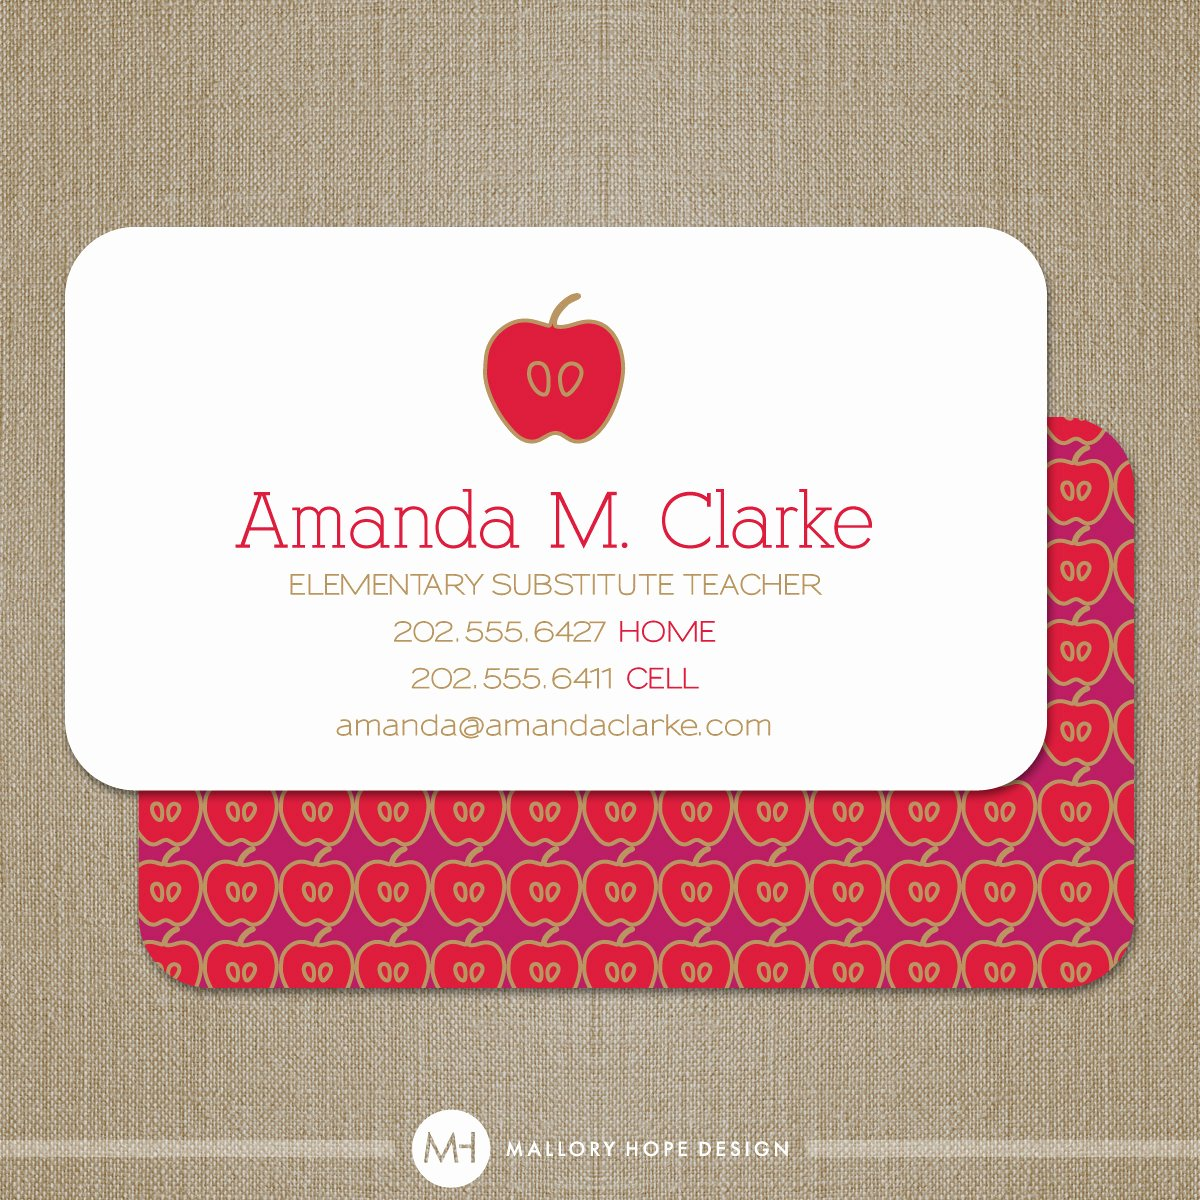 Substitute Teacher Business Cards Fresh Teacher Business Card or Substitute Teacher by